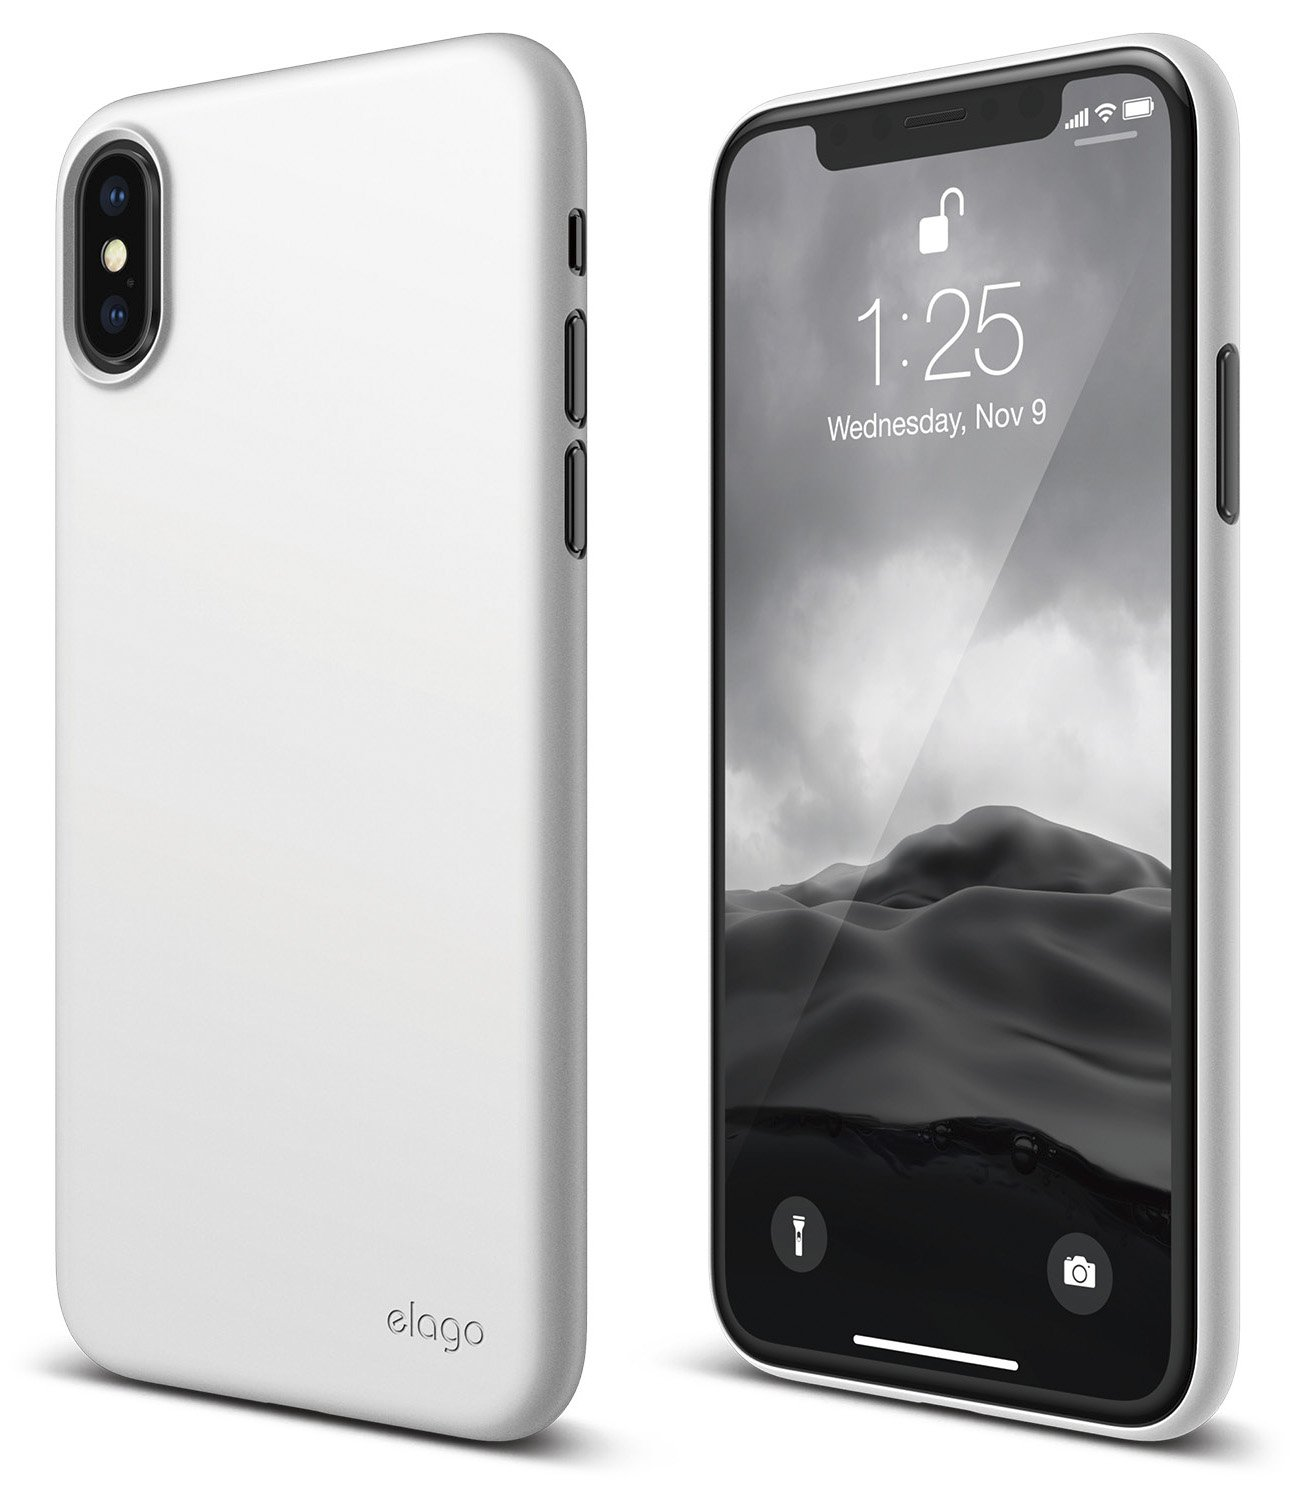 sale retailer f3035 b6b5c elago Origin Series for iPhone Xs, iPhone X Case - Minimalistic Design Slim  Fit Scratch Resistant Protective Cover for Apple iPhone Xs (2018)/ iPhone  ...